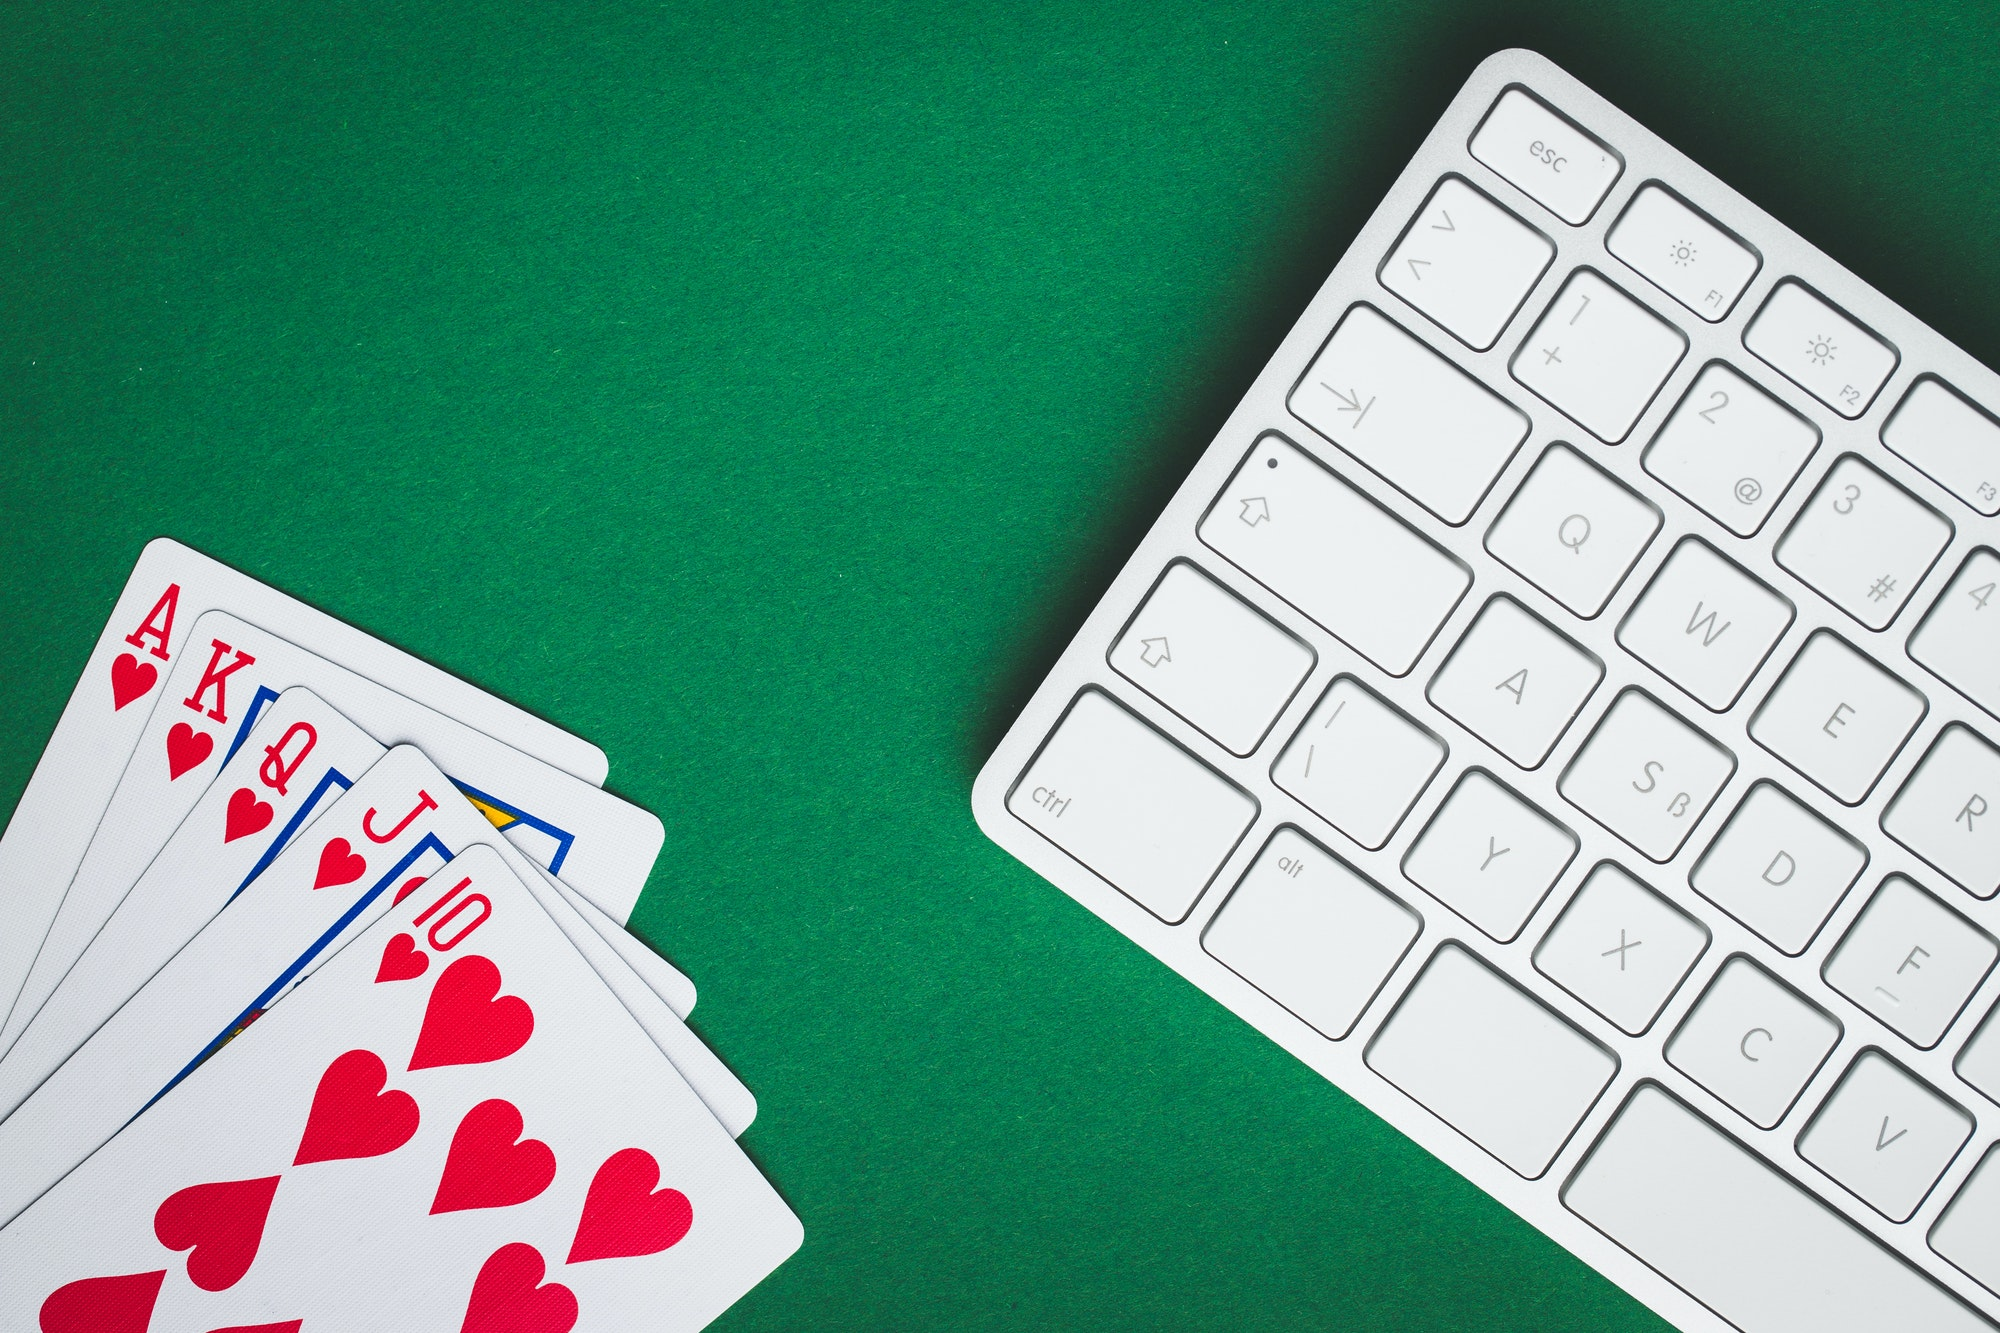 Concept of on-line poker game.